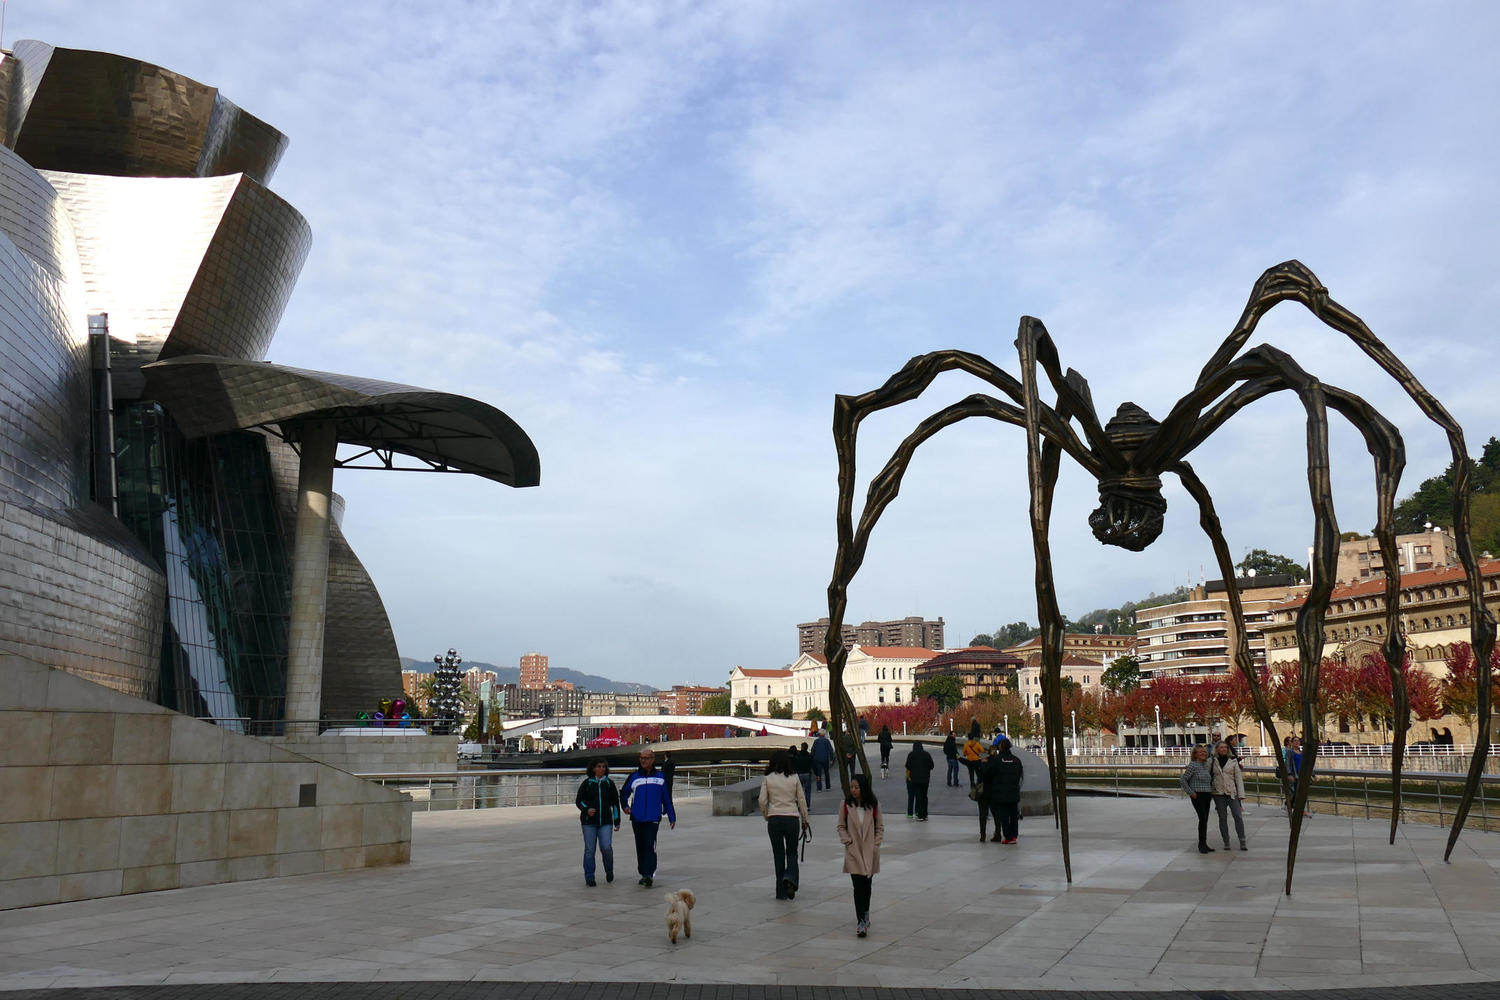 The distinctive spider sculpture outside the Guggenheim